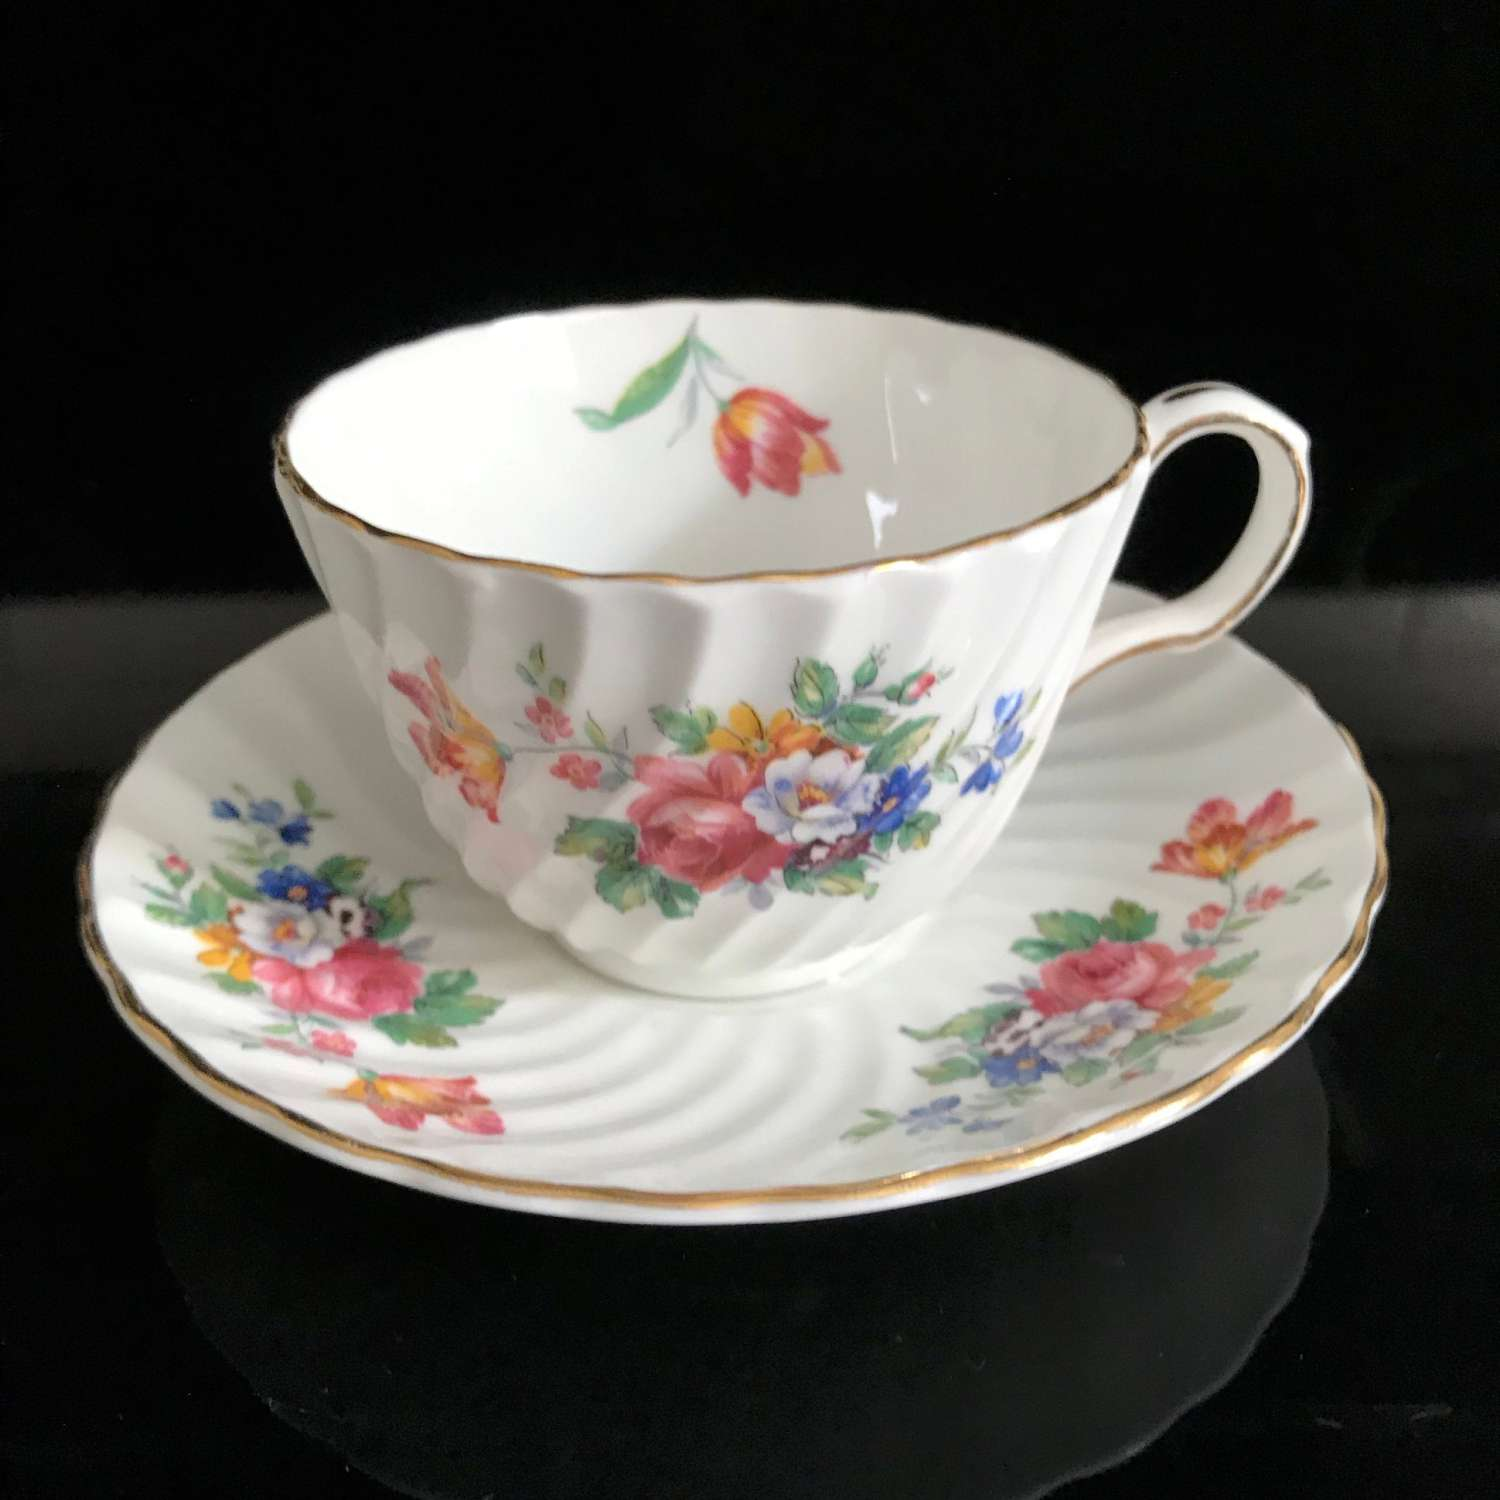 Antique Aynsley Tea Cup And Saucer Dresden Flower Pattern Fine Bone China England Collectible Display Farmhouse Cottage Bridal Shower Carol S True Vintage And Antiques